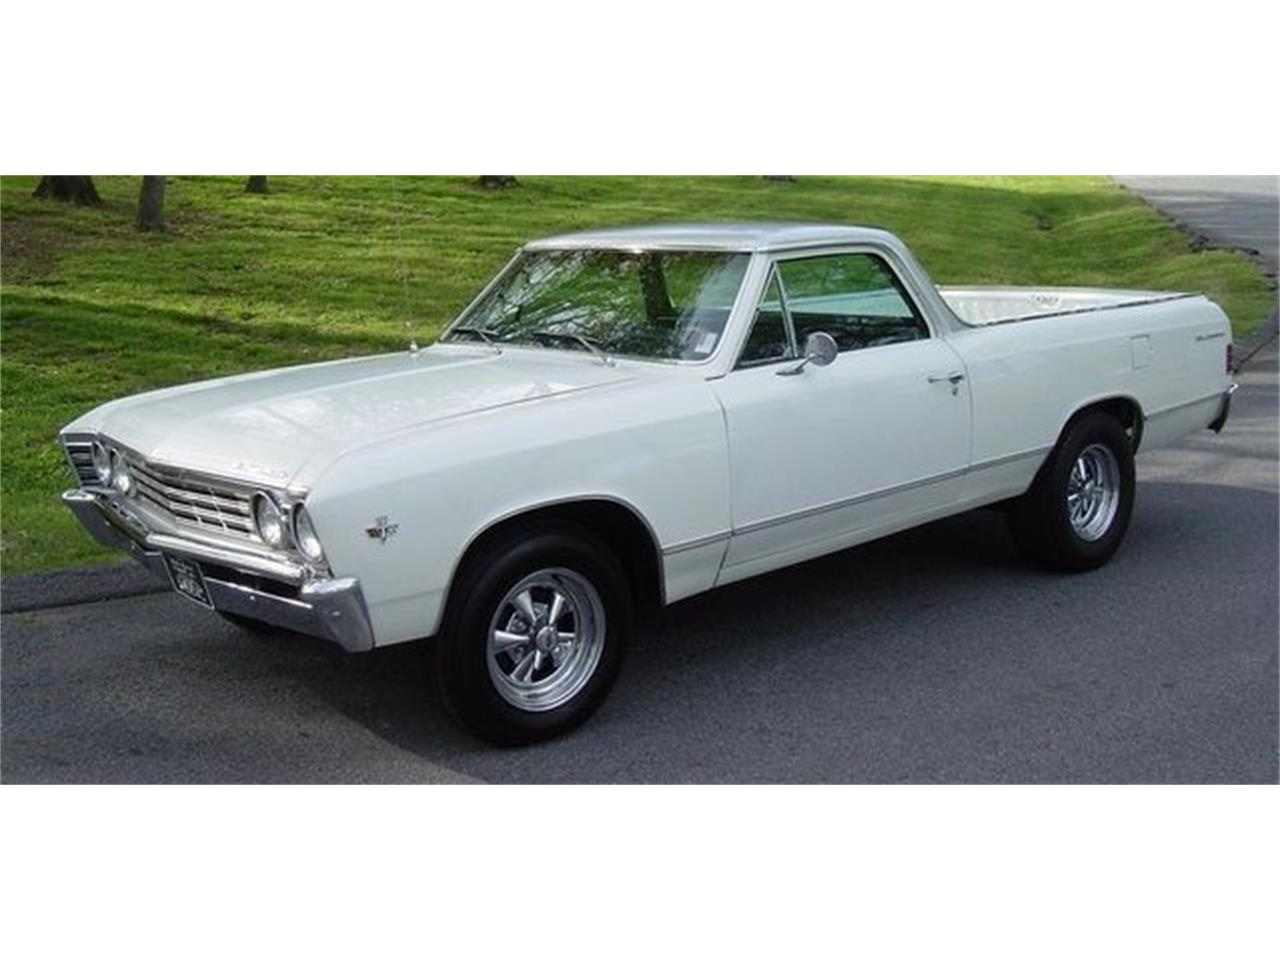 1967 Chevrolet El Camino (CC-1211075) for sale in Hendersonville, Tennessee